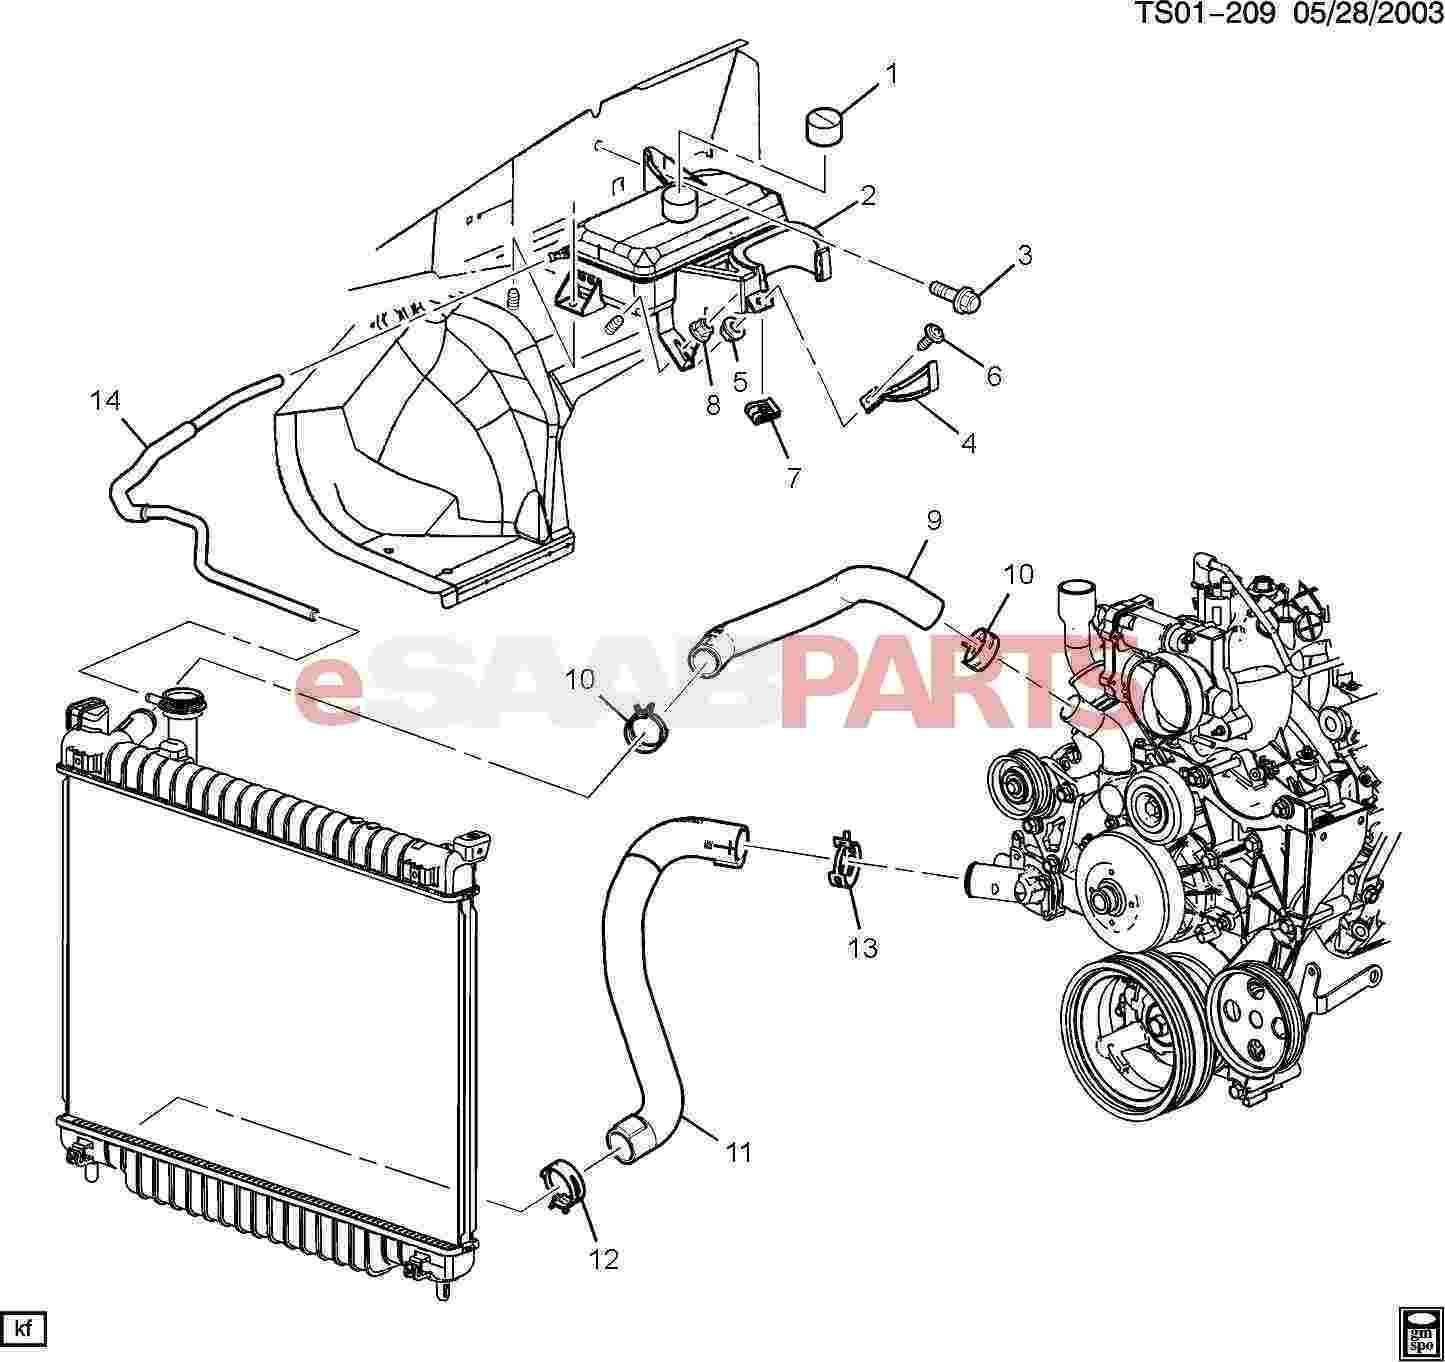 Cooling System Diagrams for Cars Automotive Cooling System Diagram ] Saab Nut Hex with Con Wa M6x1 5